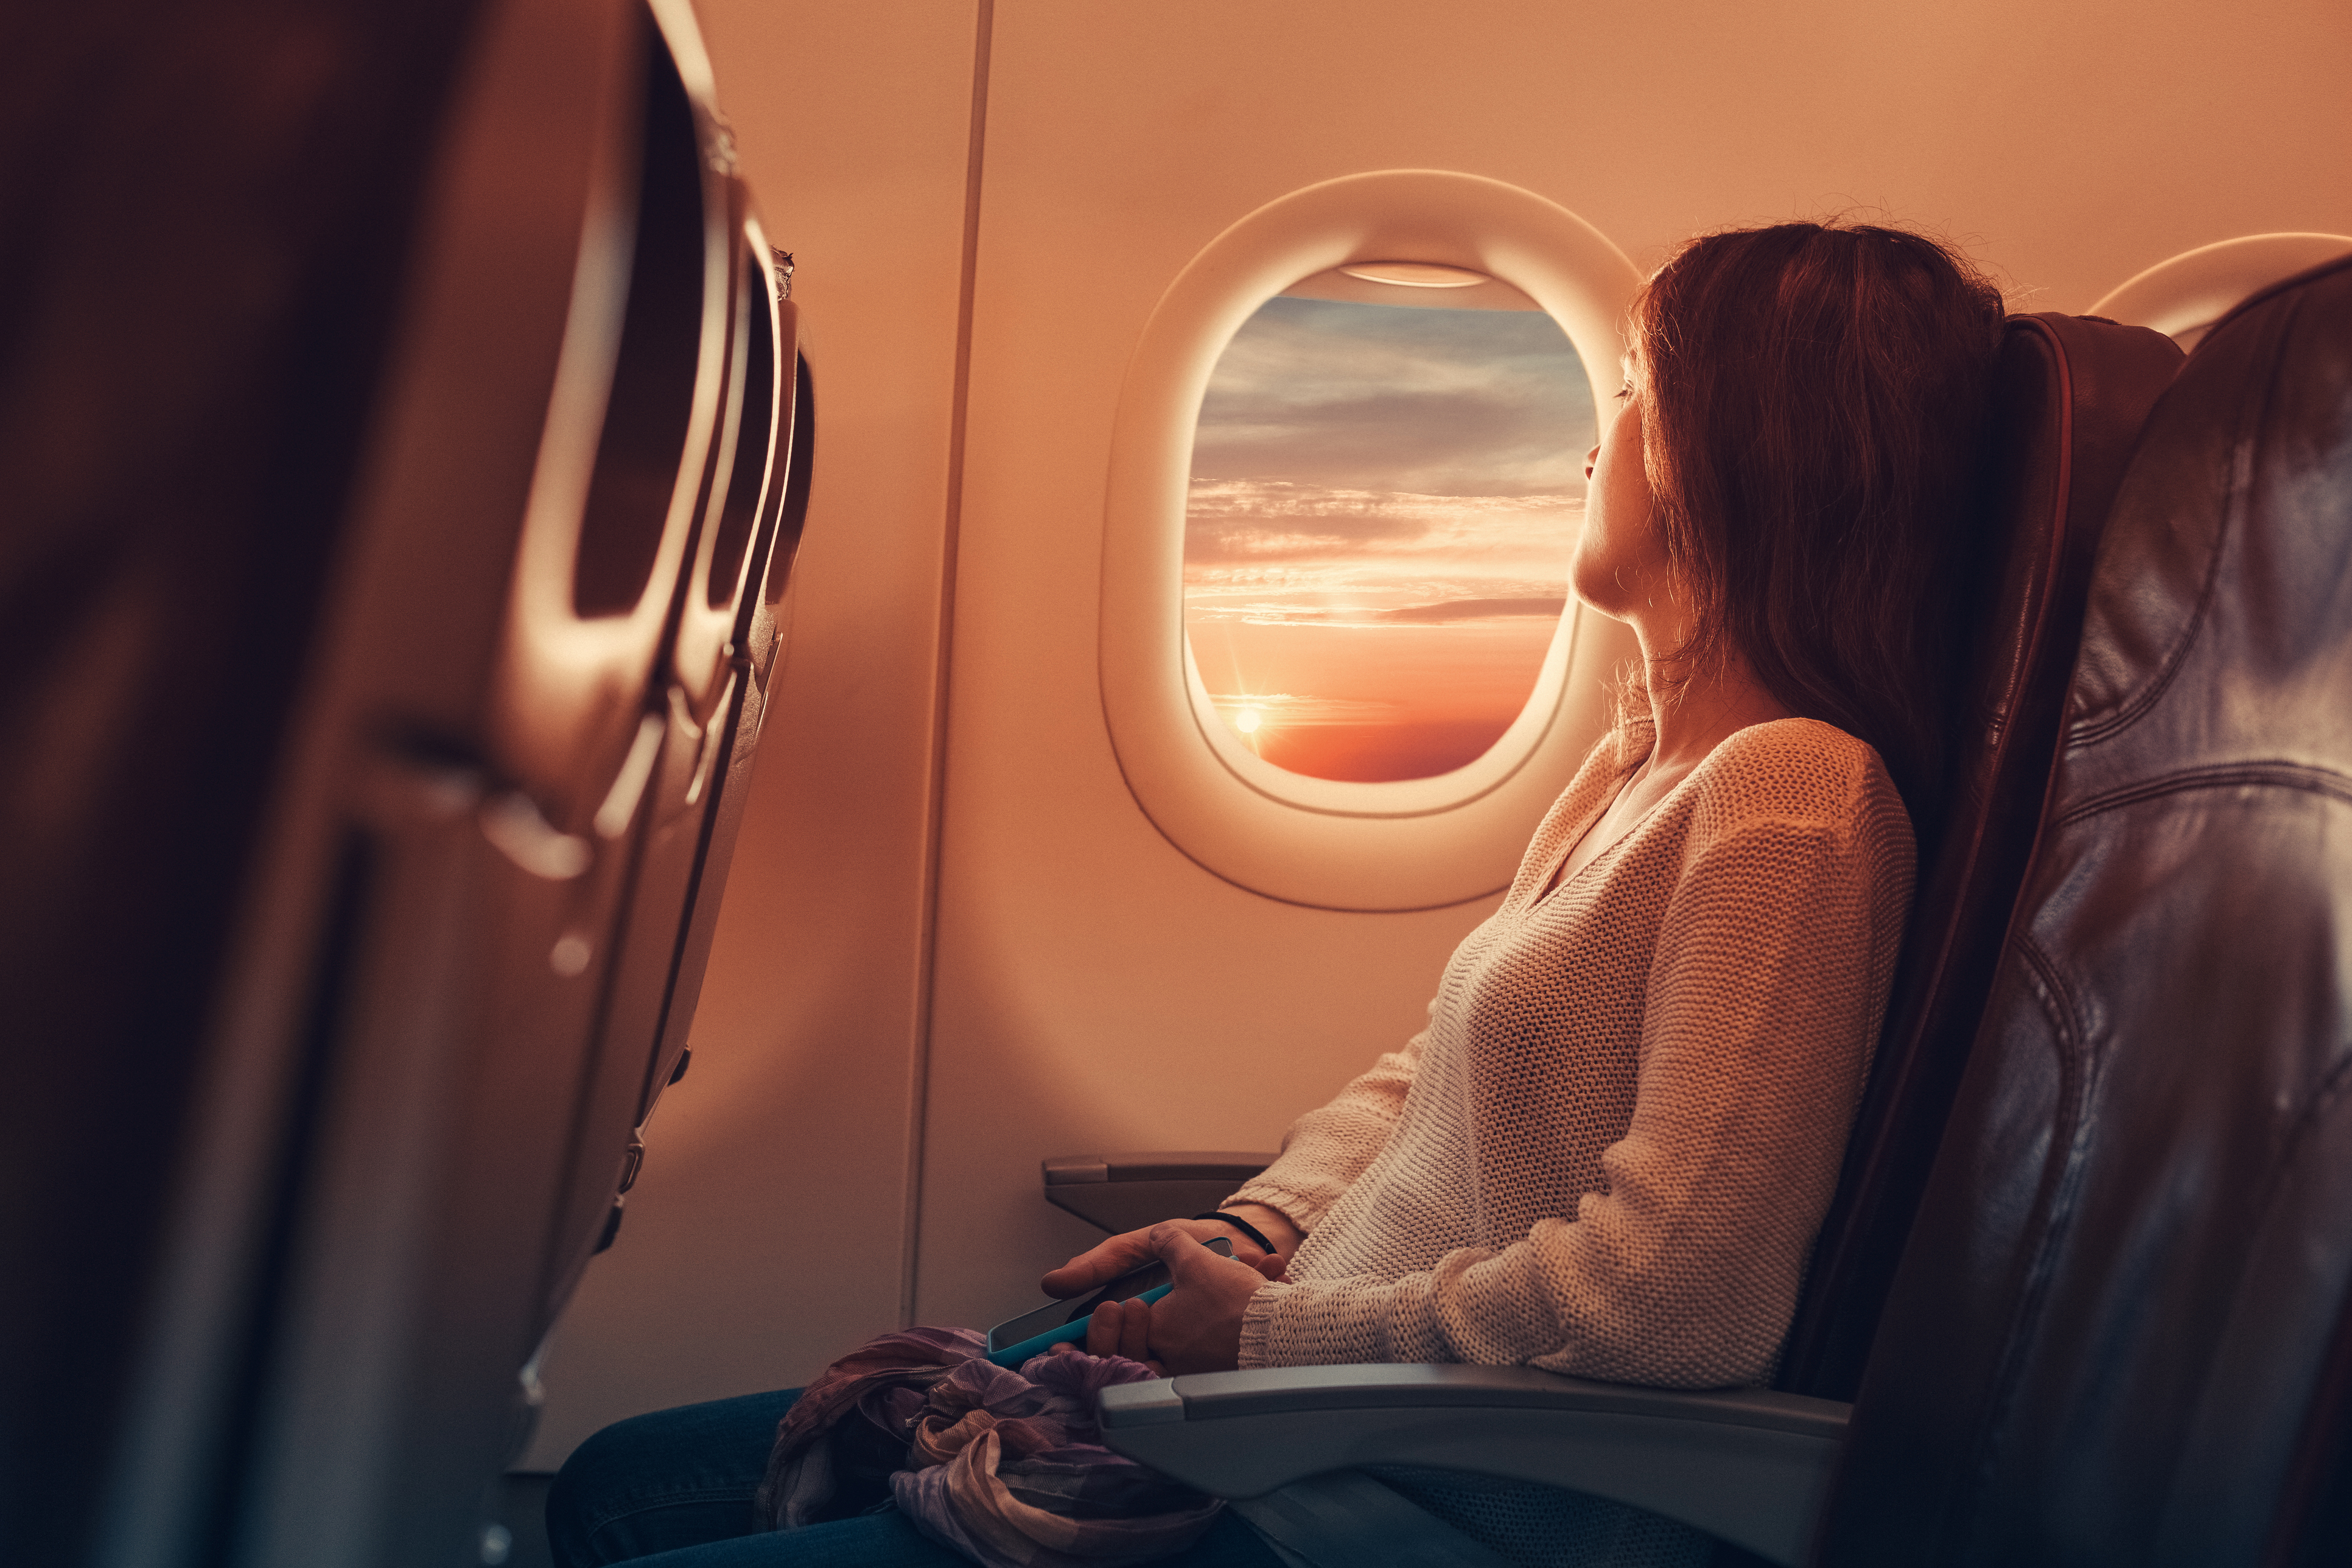 woman in window seat looking out airplane window